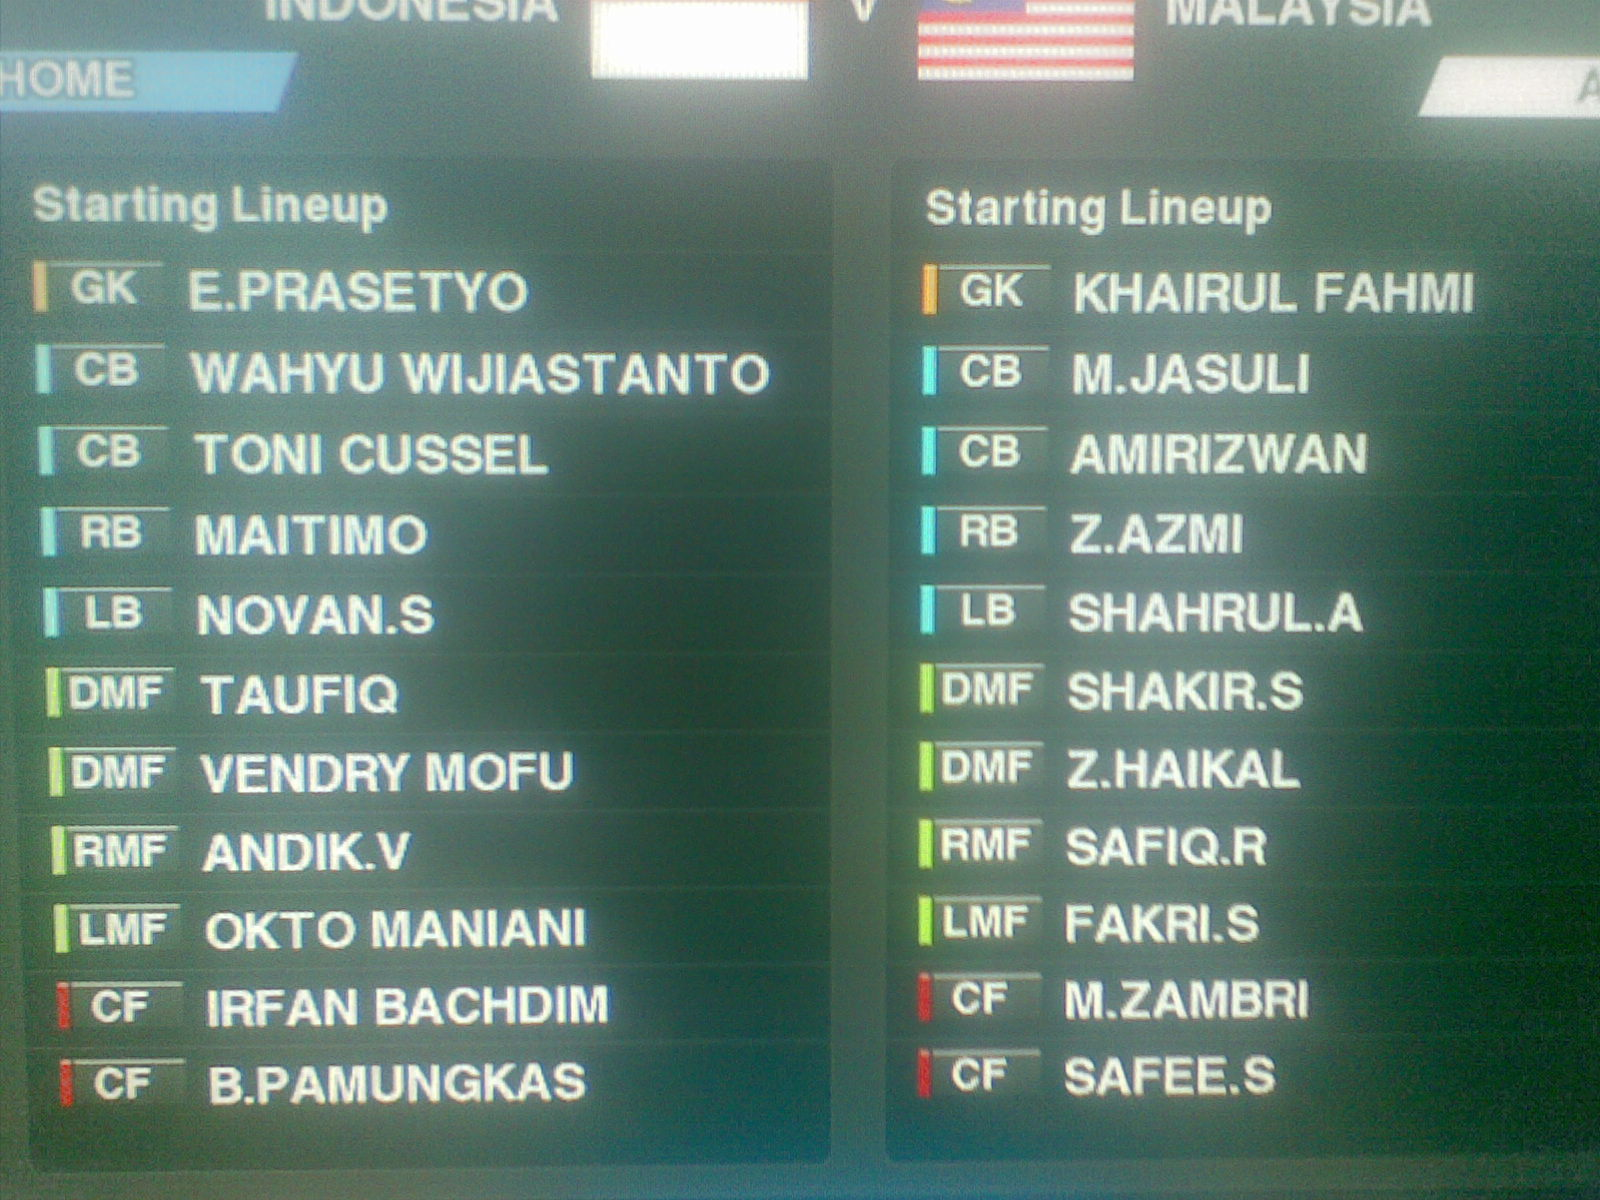 Pes 2013 plus Liga ISL, Team INdonesia ( Garuda), Team Malaysia and